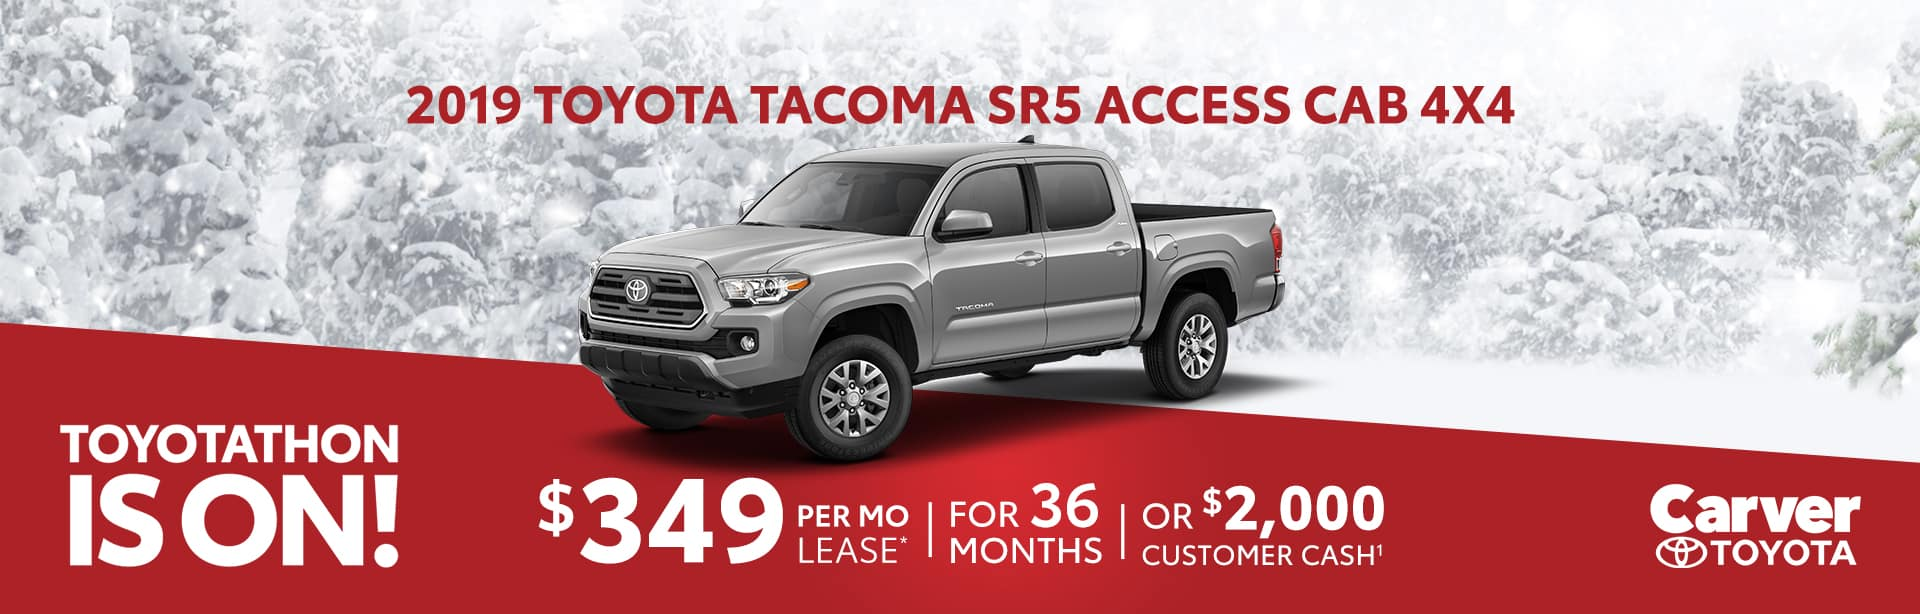 Only a $349 a month lease on a new Tacoma near Shelbyville, Indiana